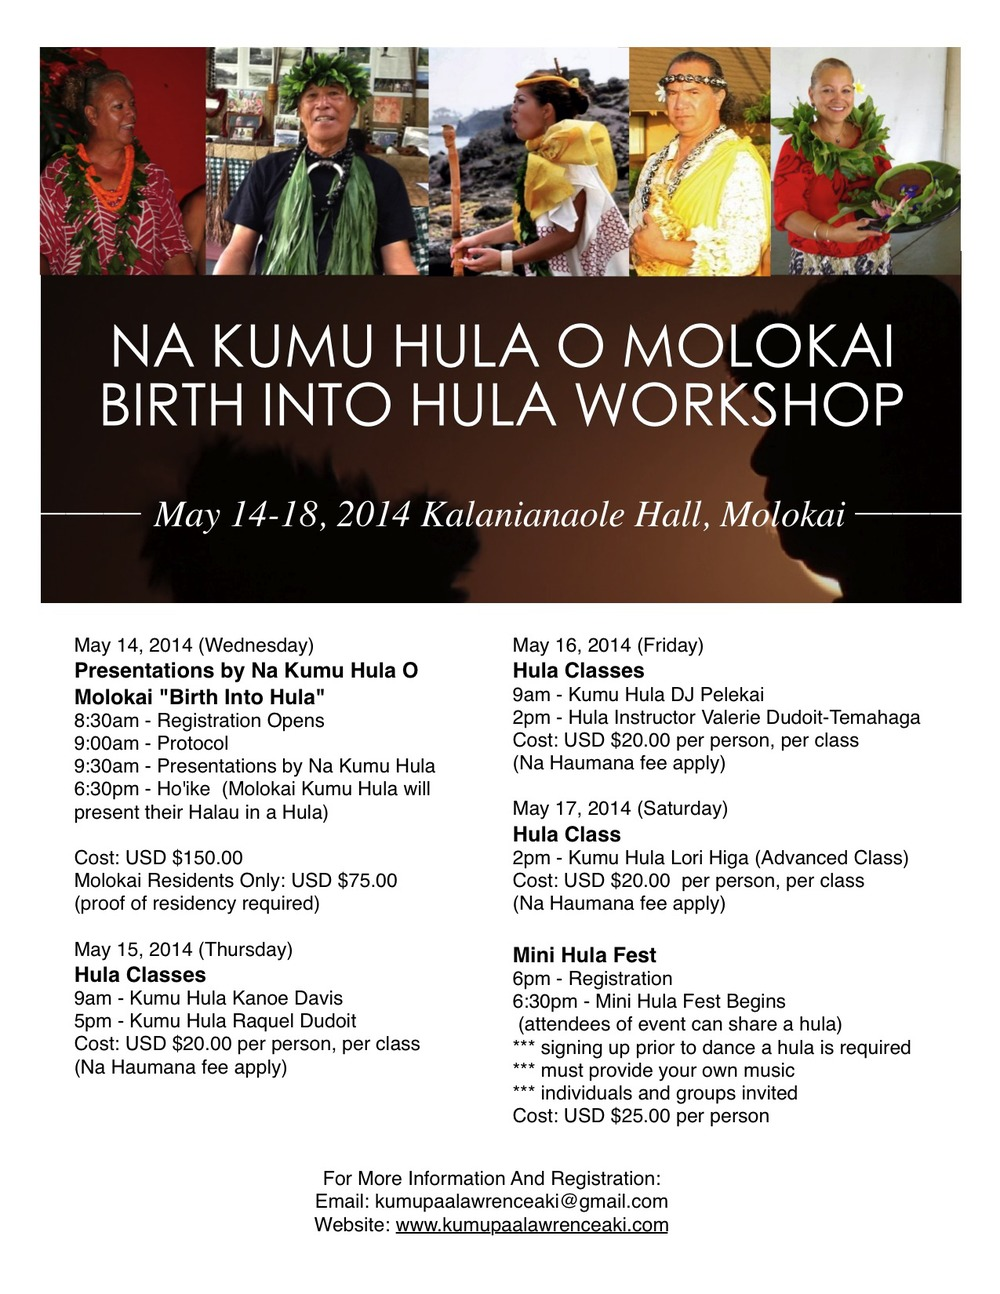 Na Kumu Hula O Molokai Birth Into Hula Workshop Program April 17